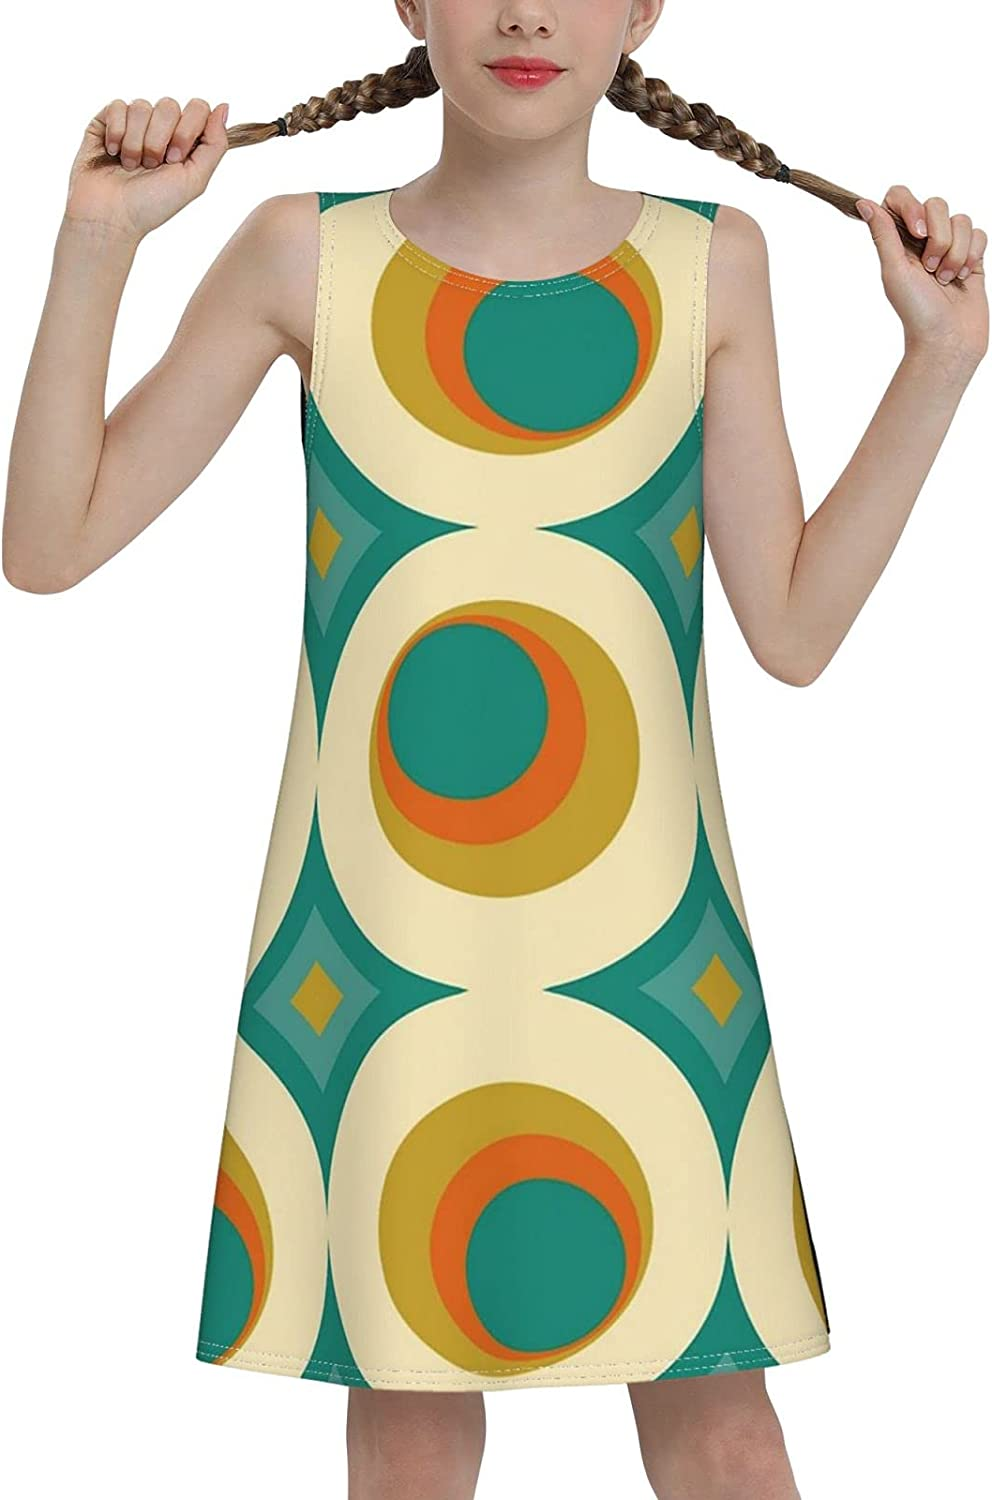 brillianting Girls Print Sleeveless Dress, Casual Party, 7-16 Years Old